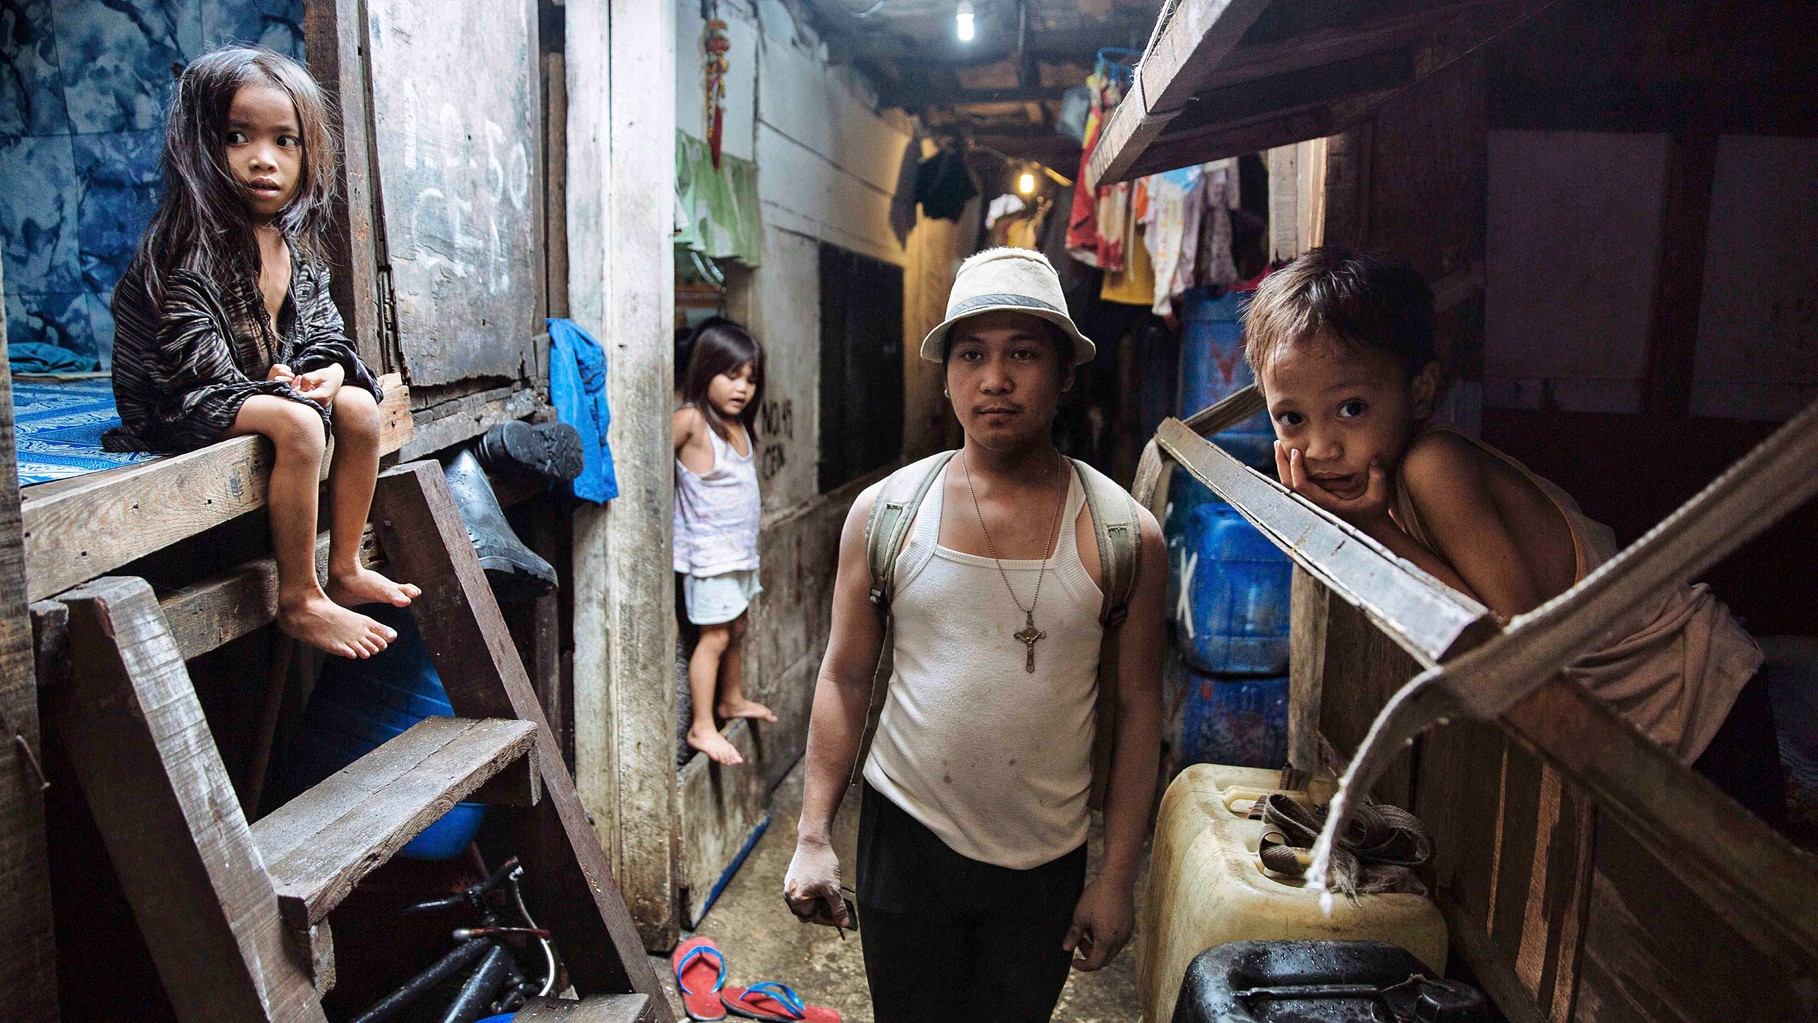 People stay in Manila, because they can find jobs, even the salary is low